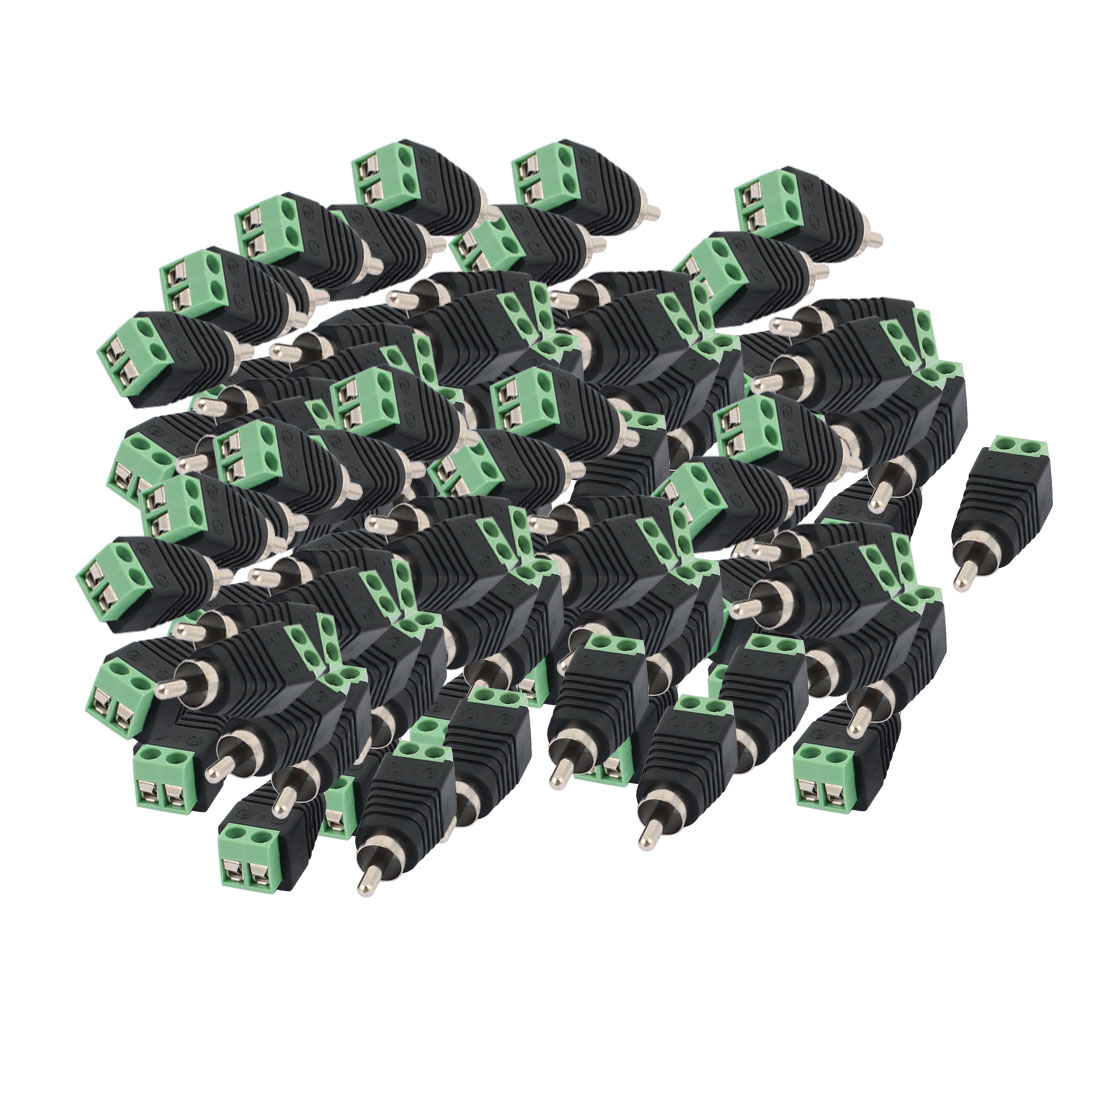 100 Pcs Screw Terminal Coaxial Cat5 Cat6 to Audio Video RCA Male Jack Connector